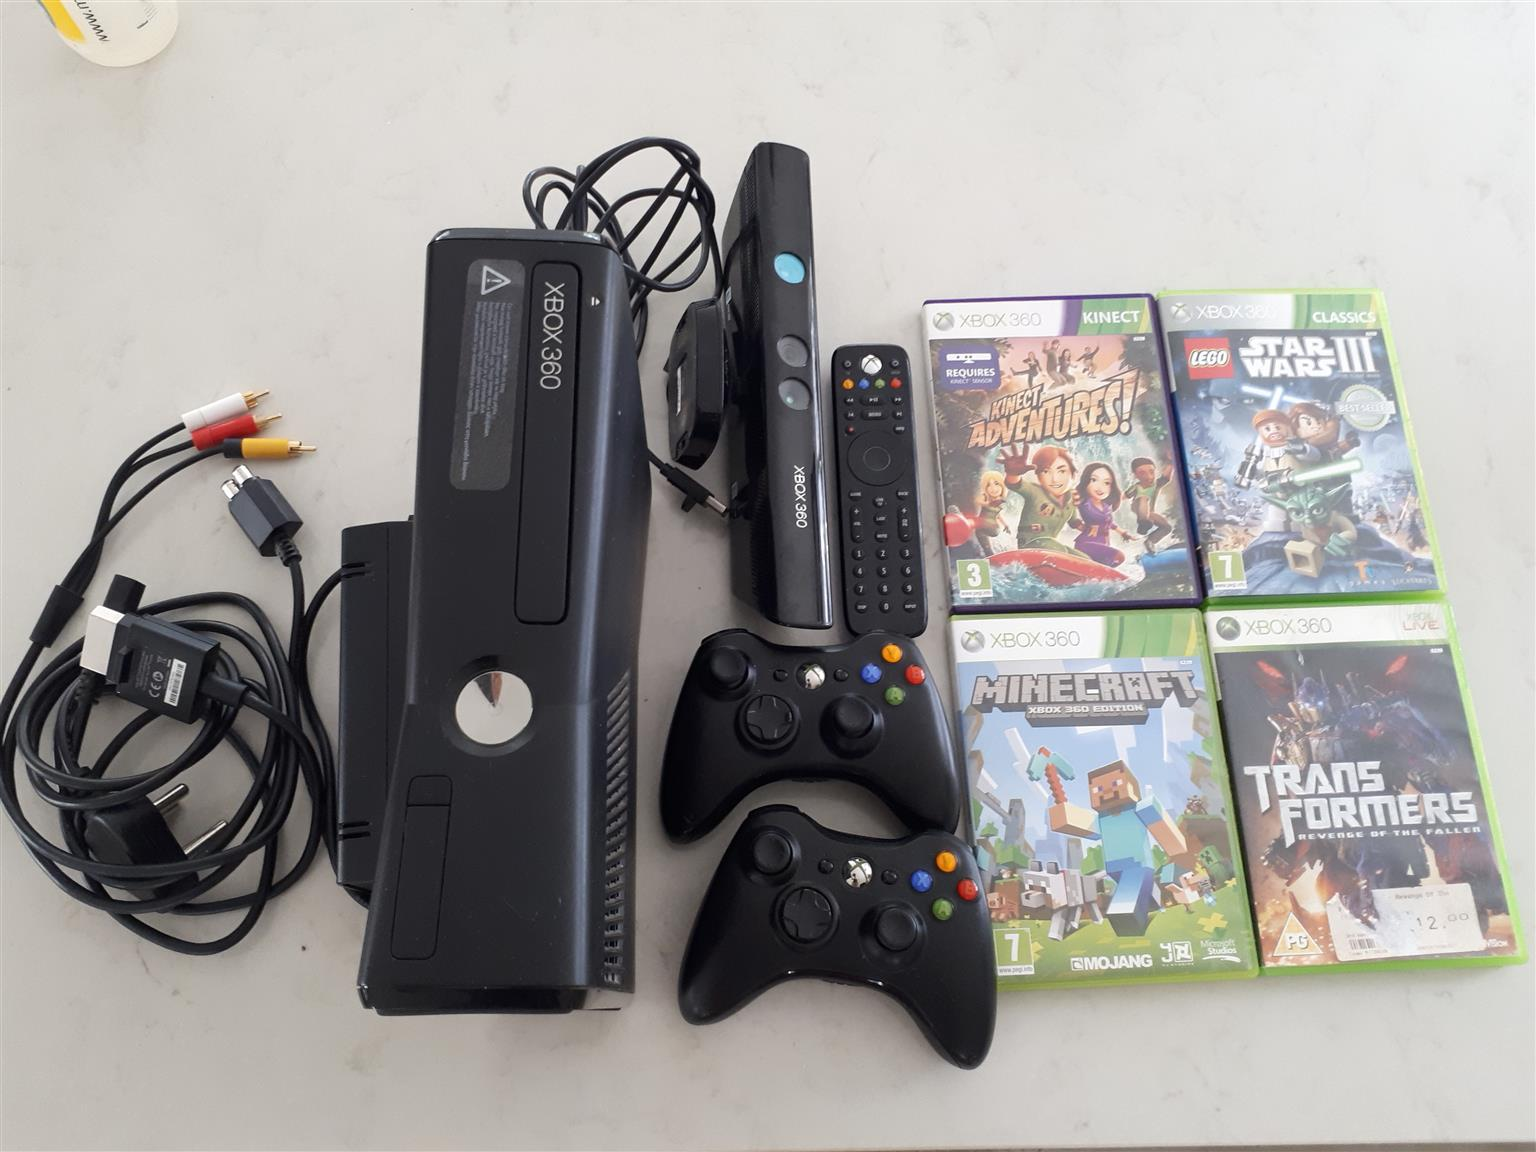 XBox 360 console, 2 wireless remote controllers + Kinect and 4 games